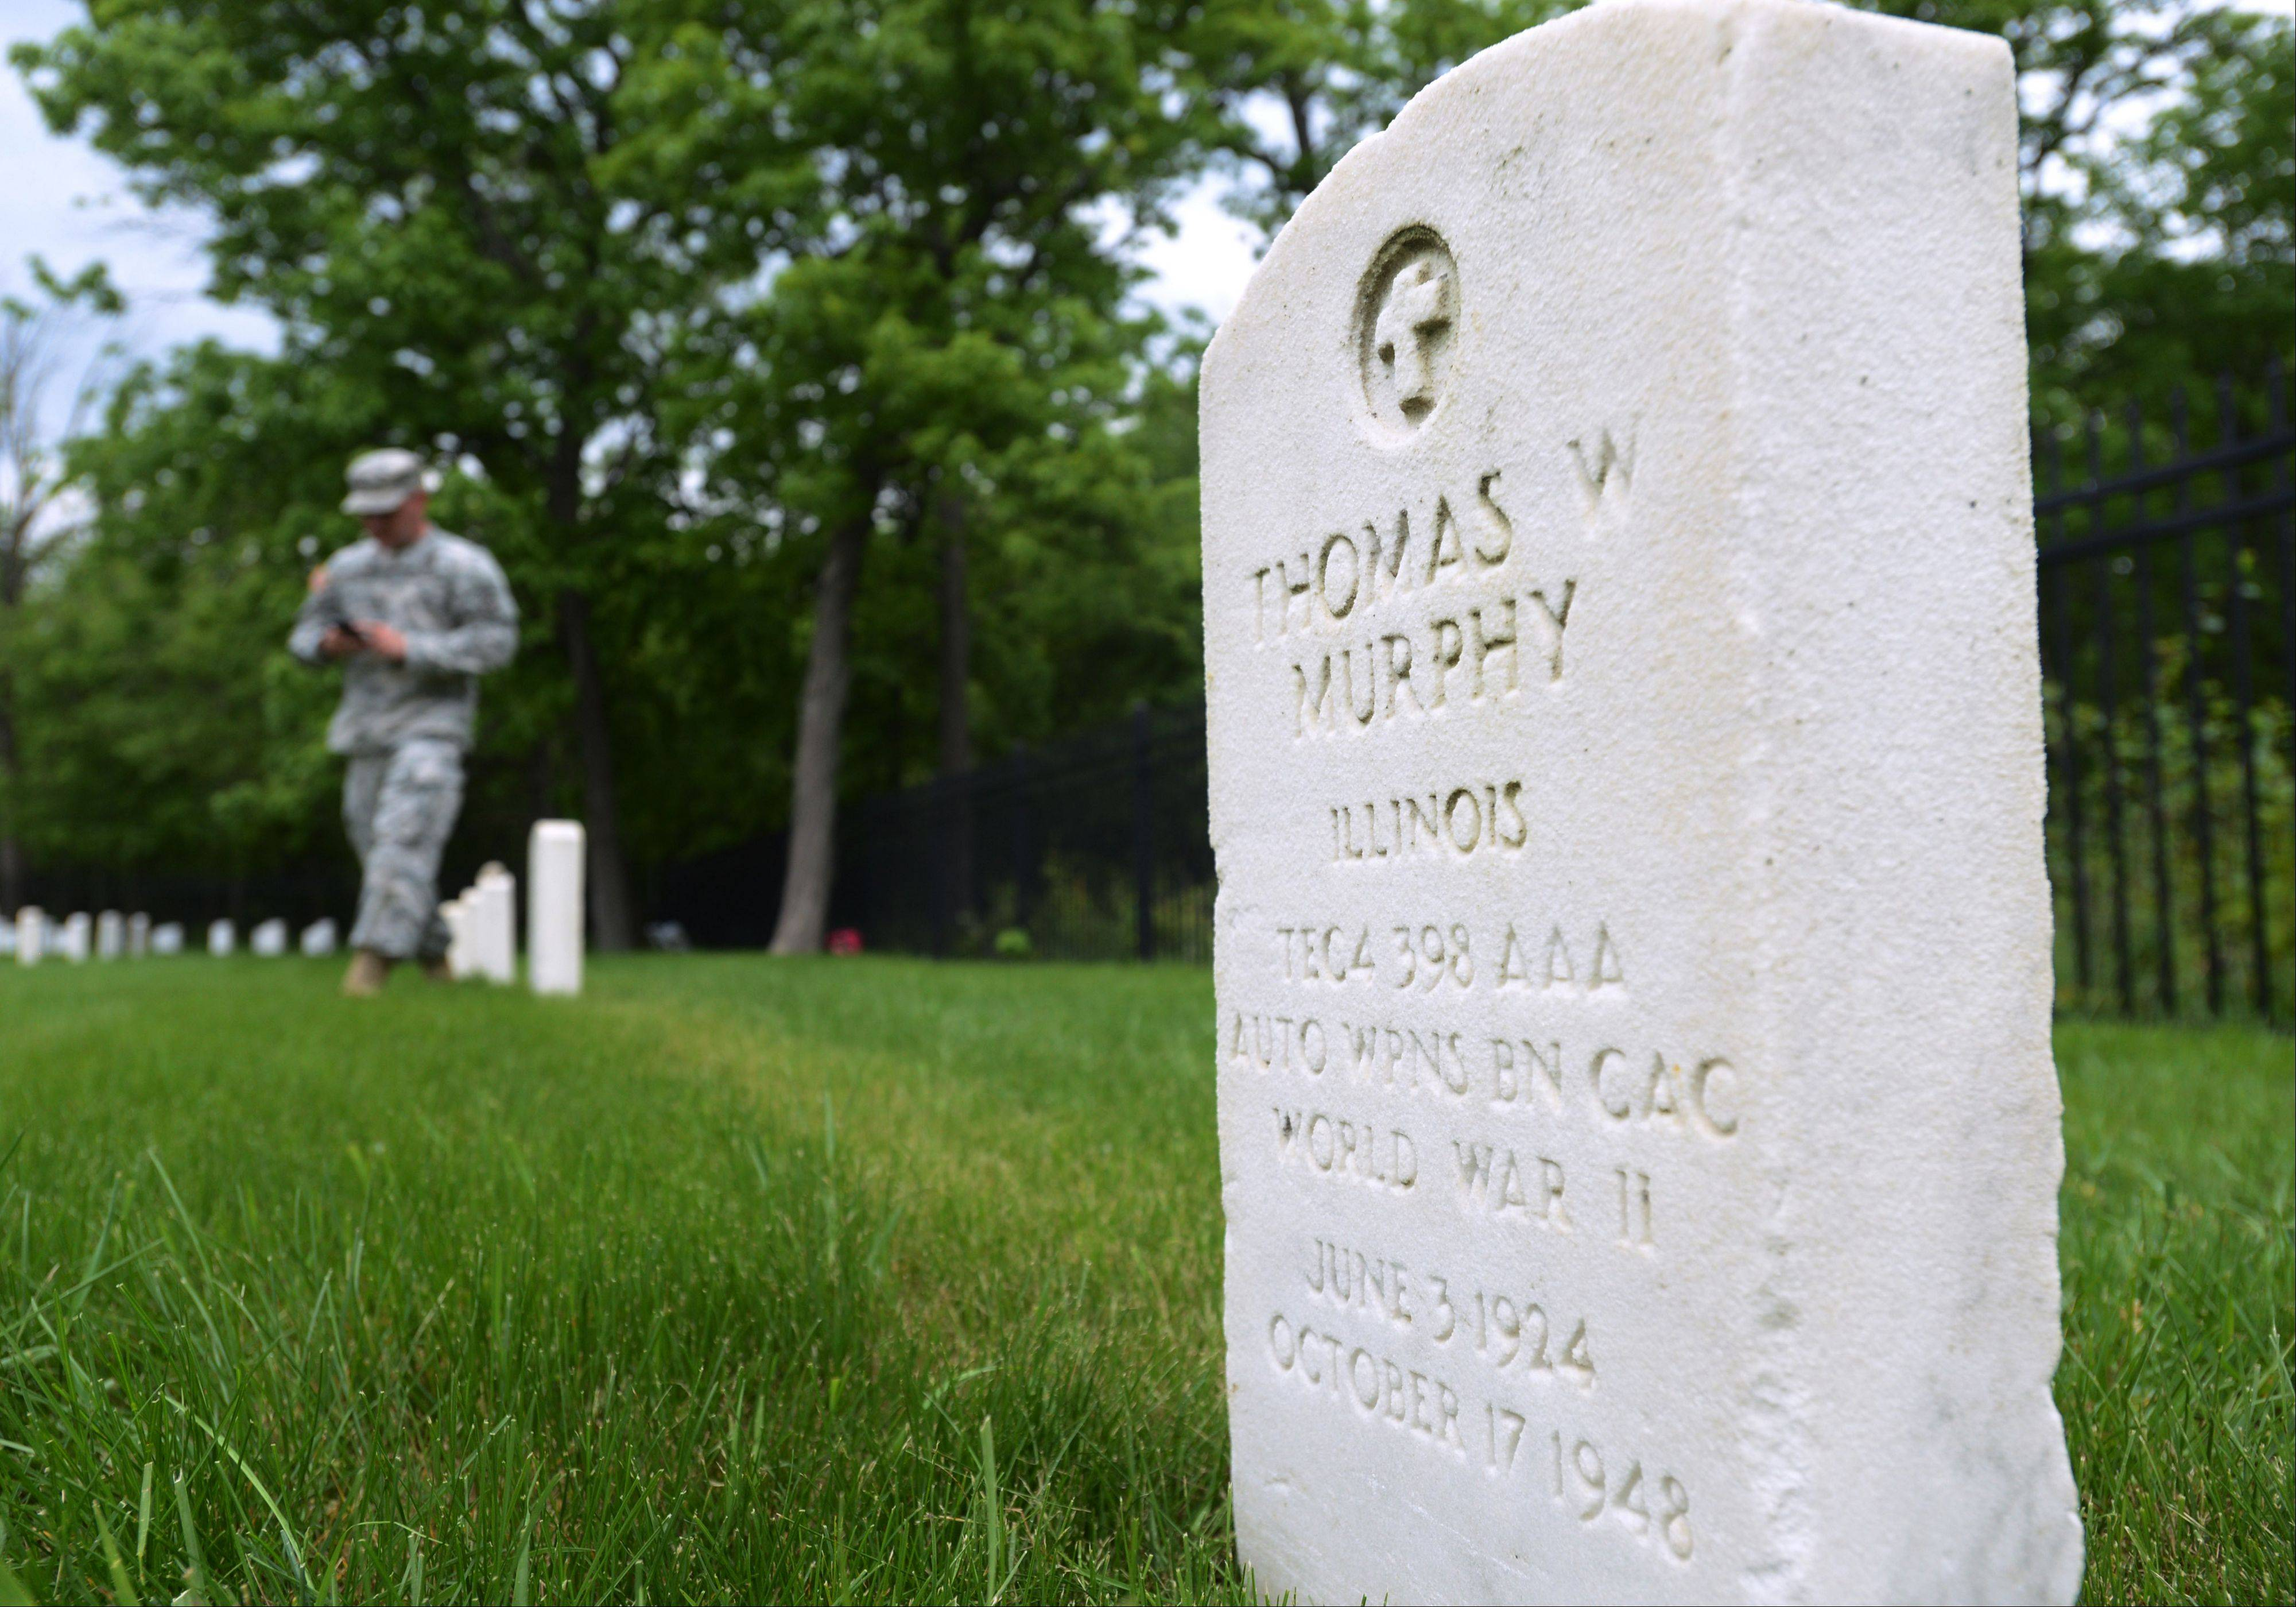 Sgt. 1st Class Larry Parks photographs grave markers at the Fort Sheridan Cemetery near Highland Park.